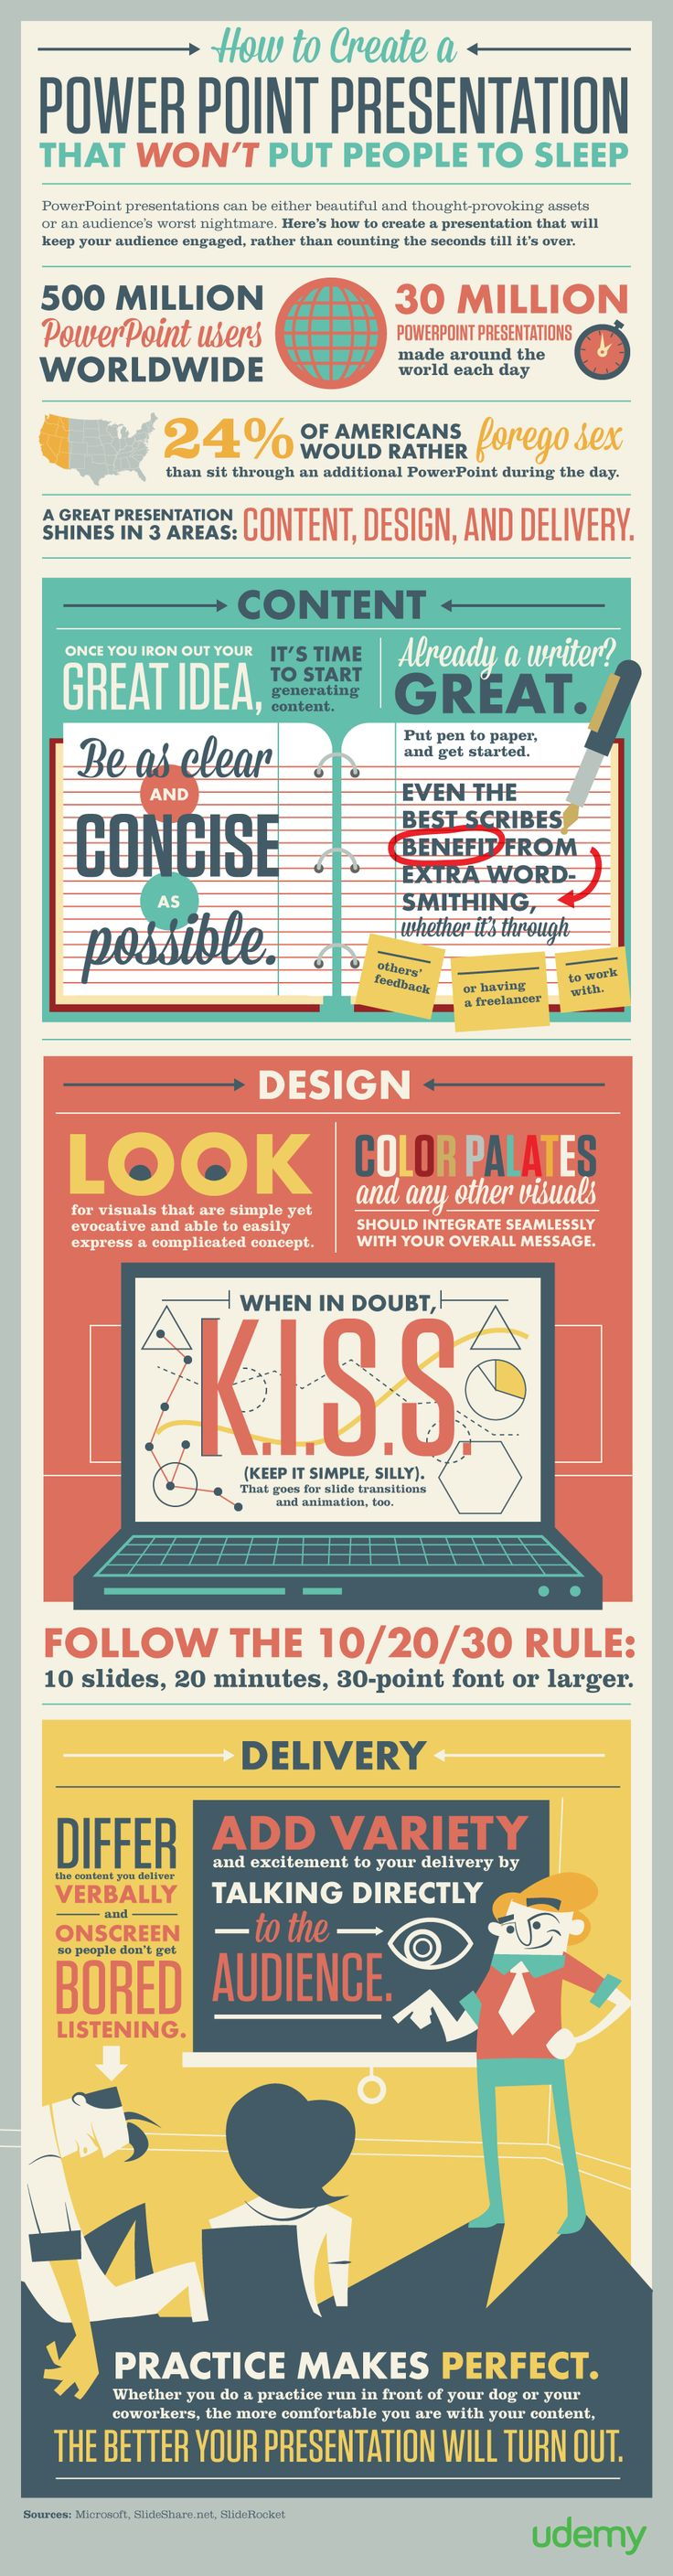 Poster design microsoft - How To Create A Powerpoint Presentation That Won T Put People To Sleep